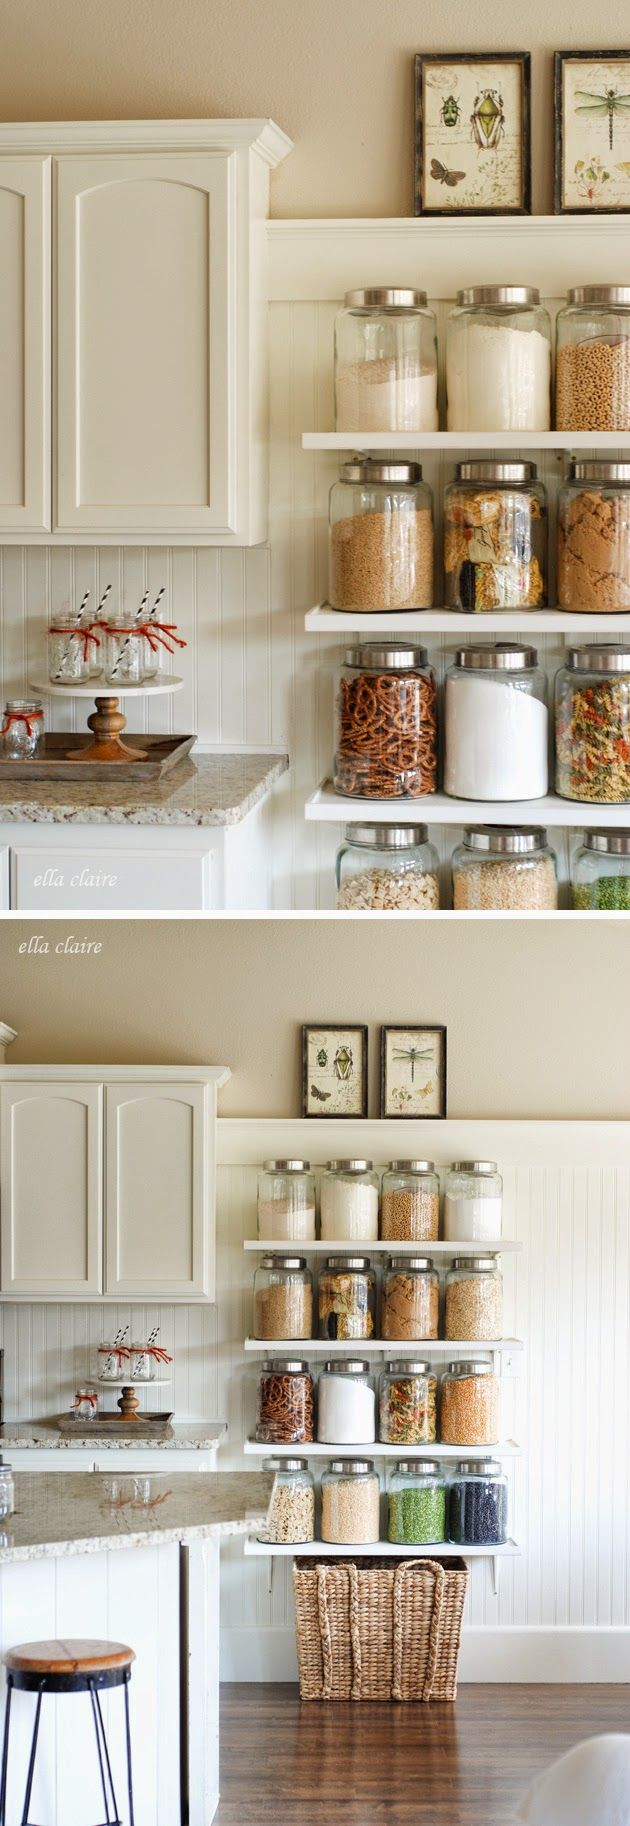 274 best diy kitchen decor images on pinterest home kitchen and diy country store kitchen shelves